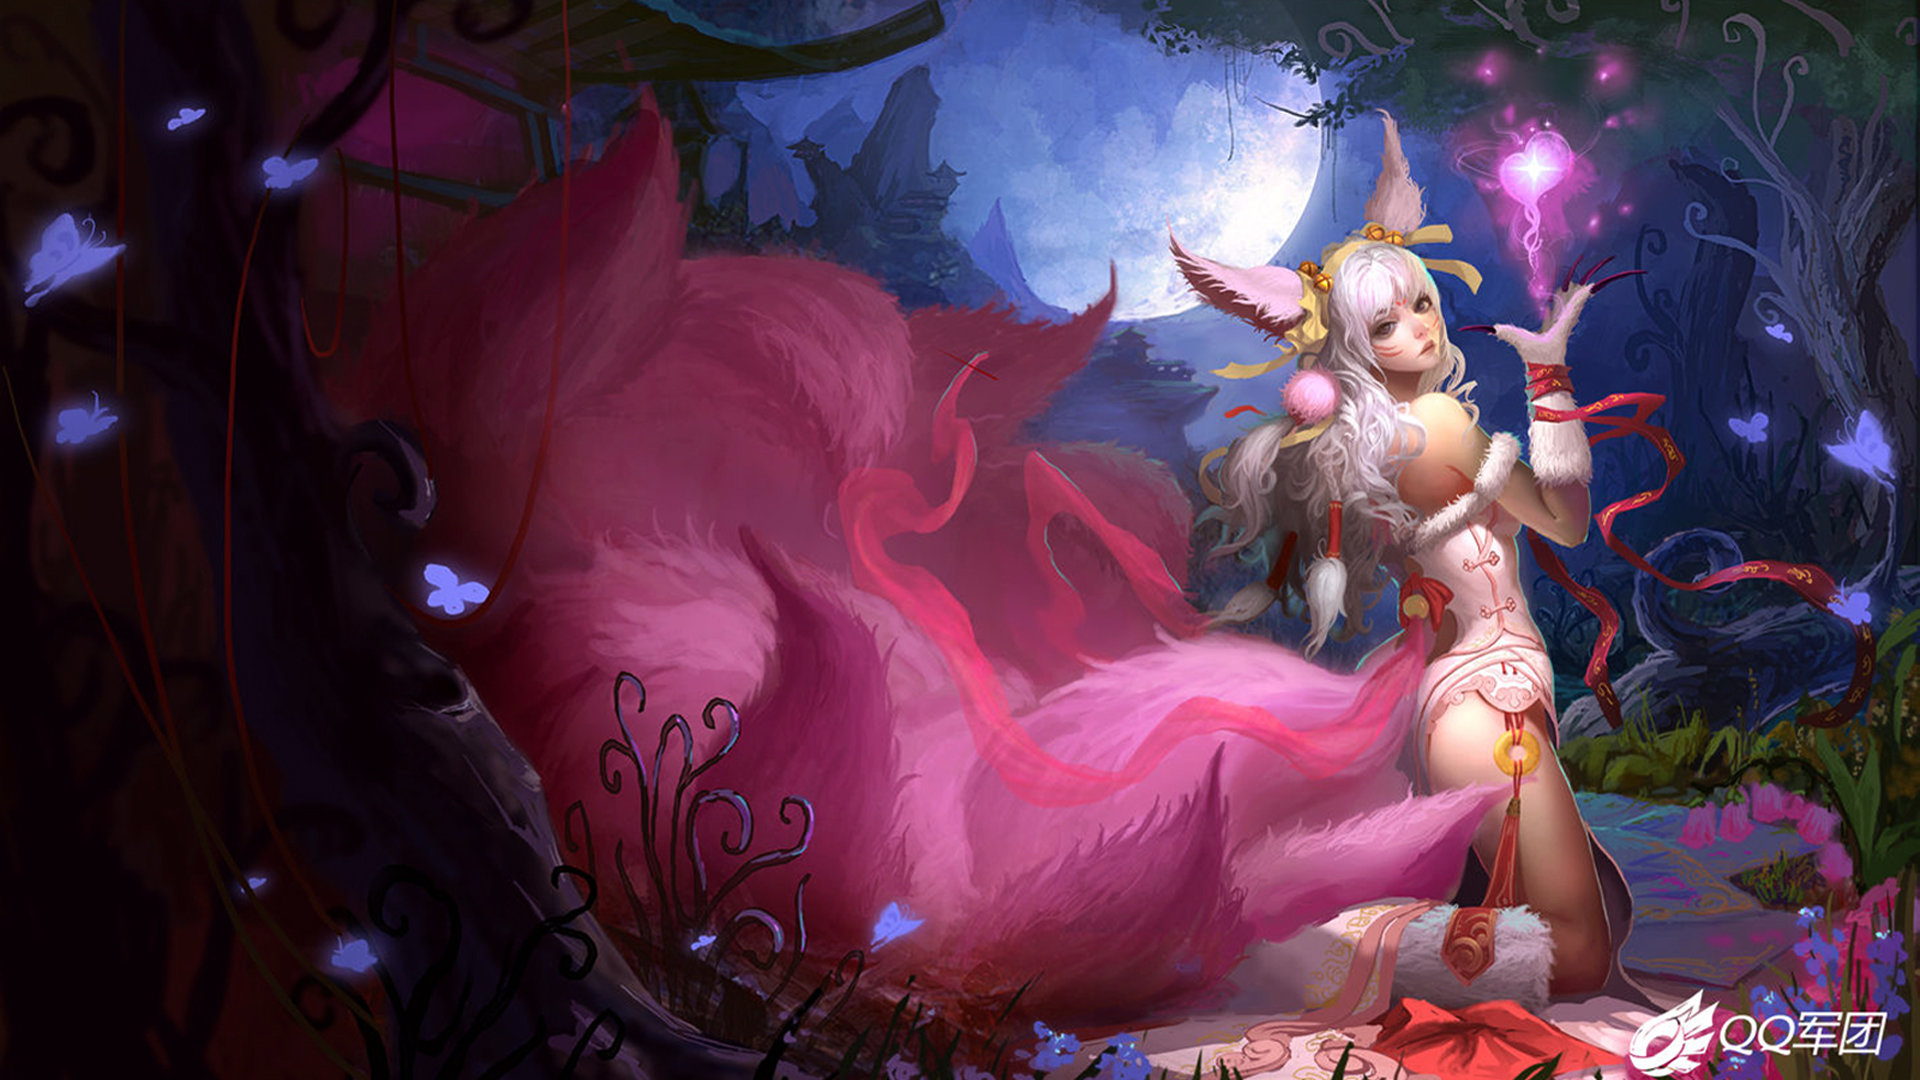 Awesome Ahri League Of Legends Free Wallpaper Id 171786 For Hd